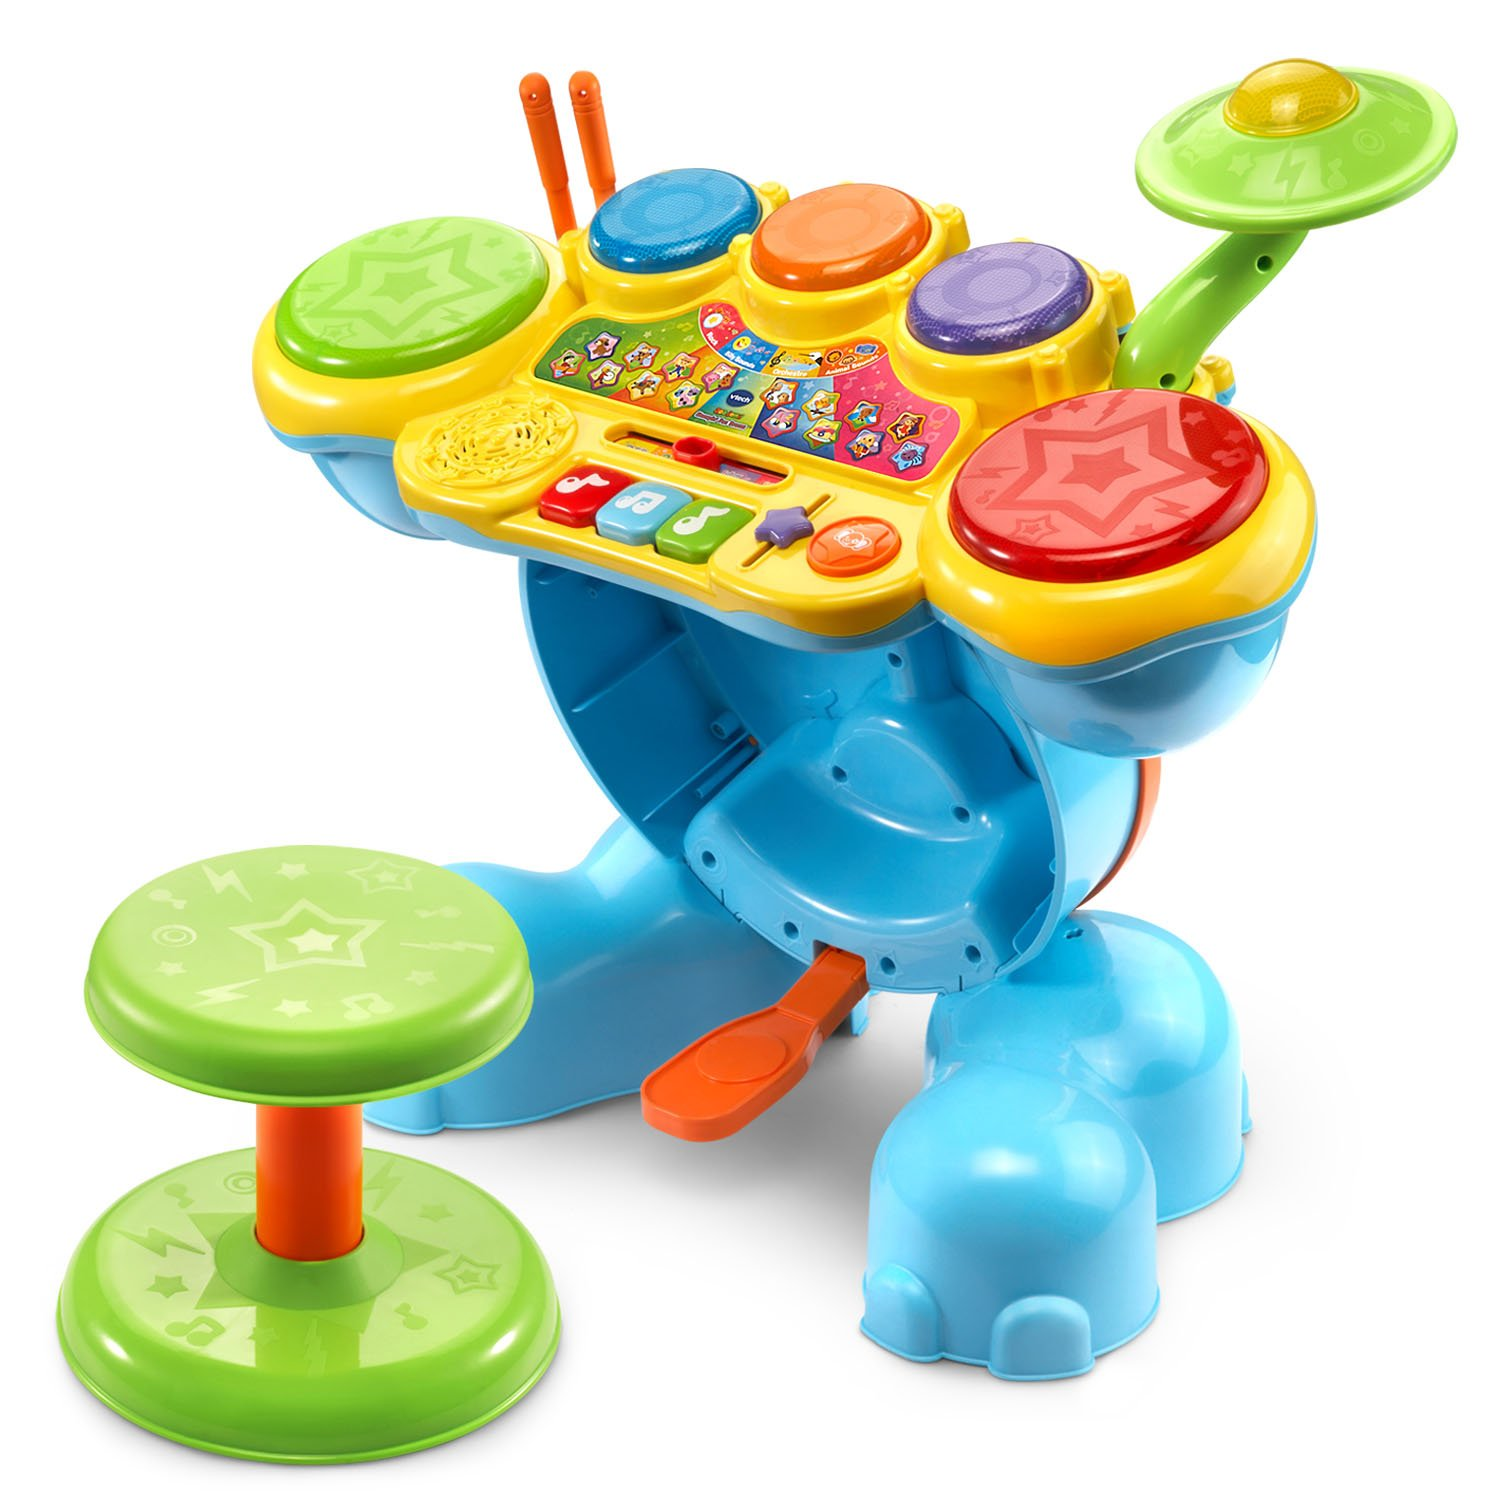 Little Kids Musical Instruments Toddler Children Toys Drum Kit Baby